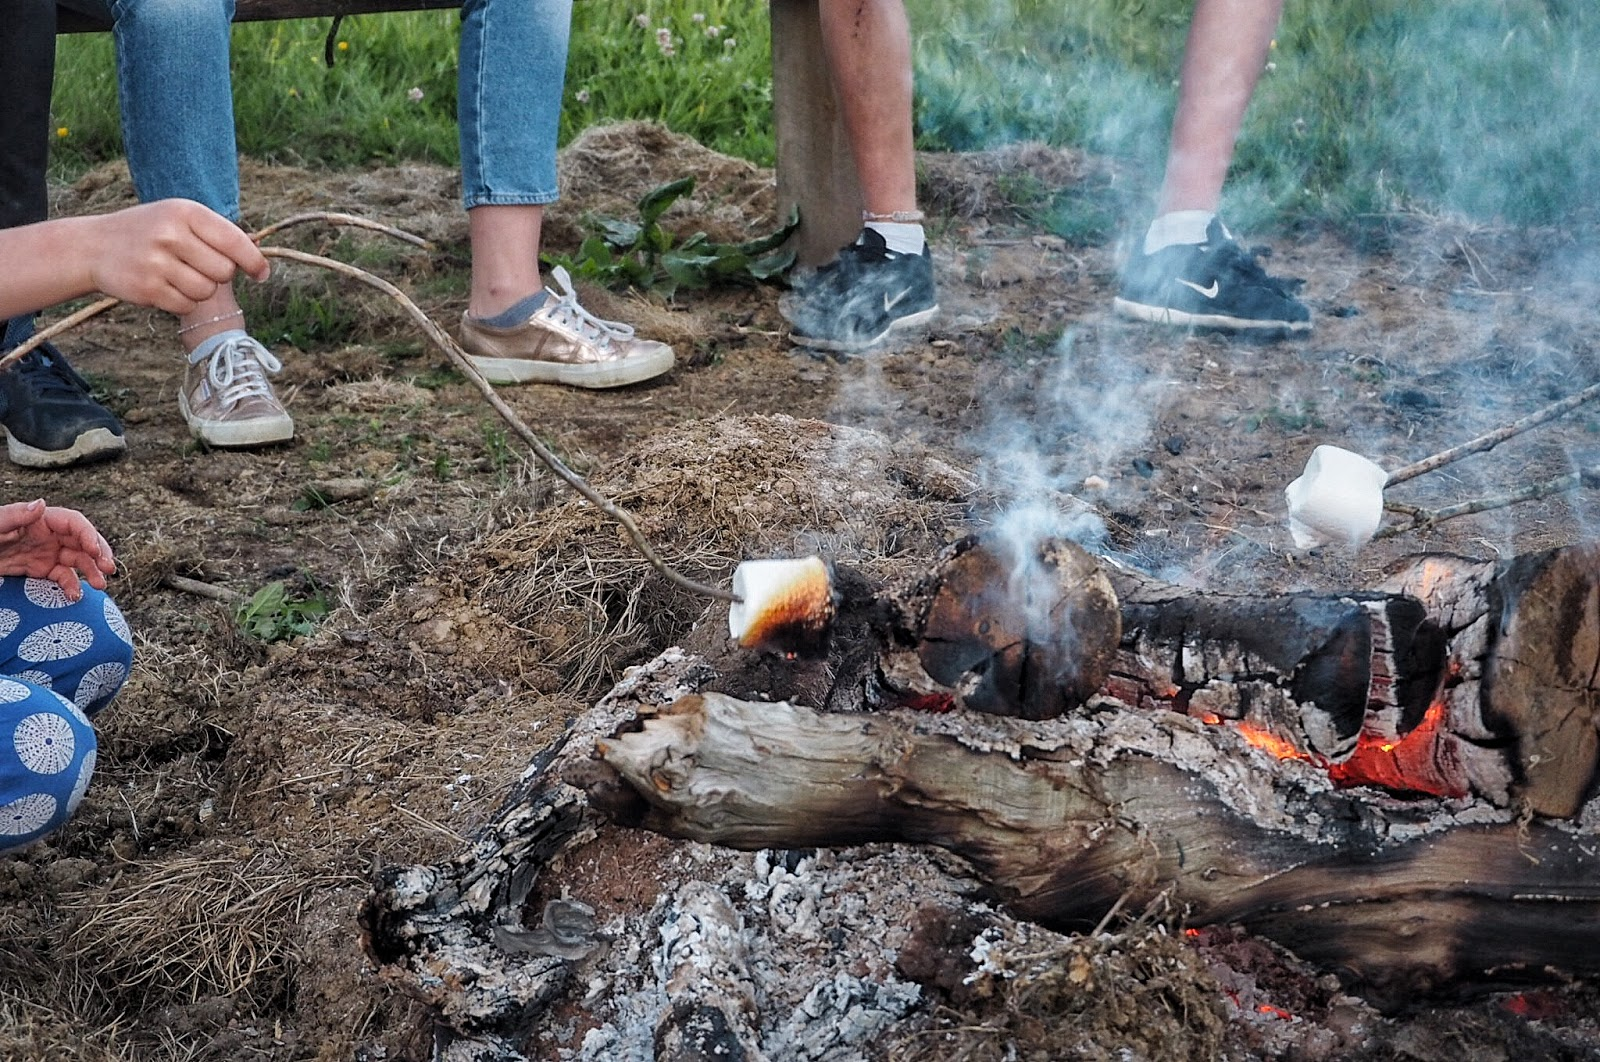 toasting marshmallows by the #GOcation camp fire